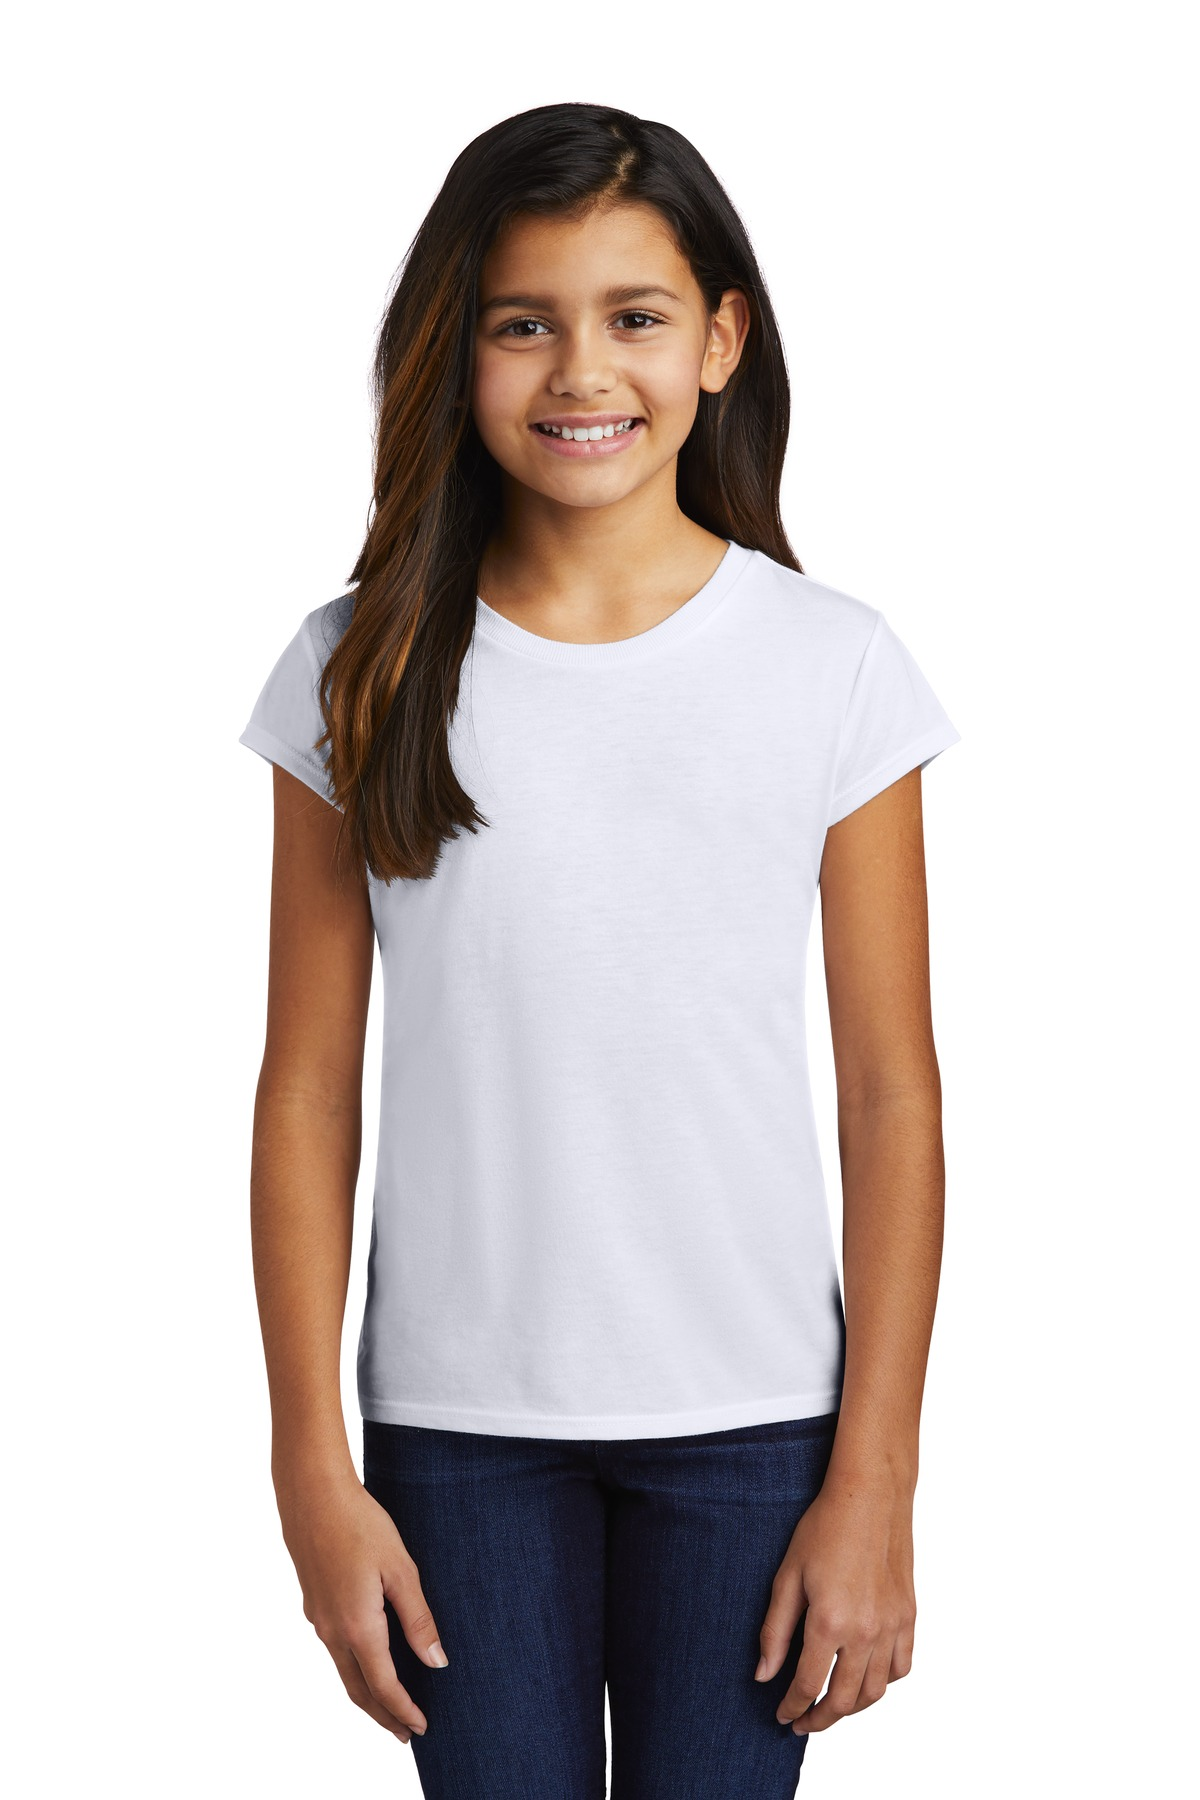 District  ®  Girls Perfect Tri  ®  Tee DT130YG - White